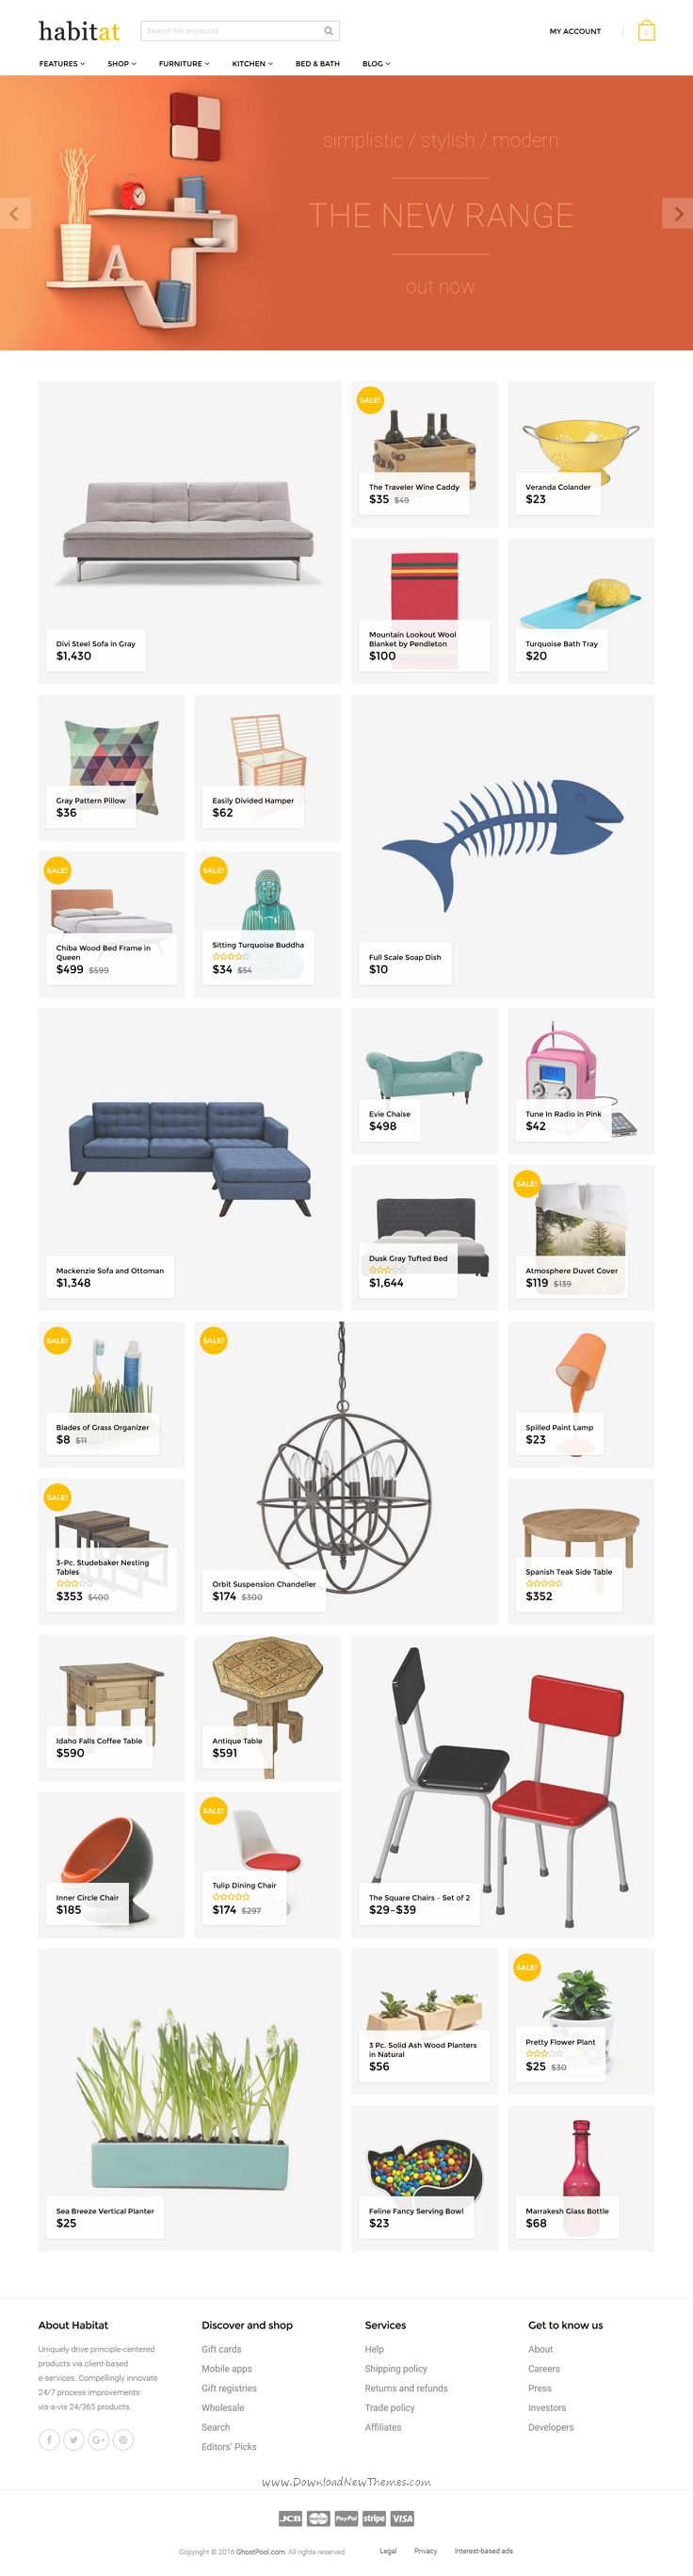 Habitat is a clean, modern WordPress #WooCommerce theme perfect choice for #selling furniture and home #décor products online in stunning eCommerce website download now➯ https://themeforest.net/item/habitat-multipurpose-woocommerce-theme/16262409?ref=Datasata